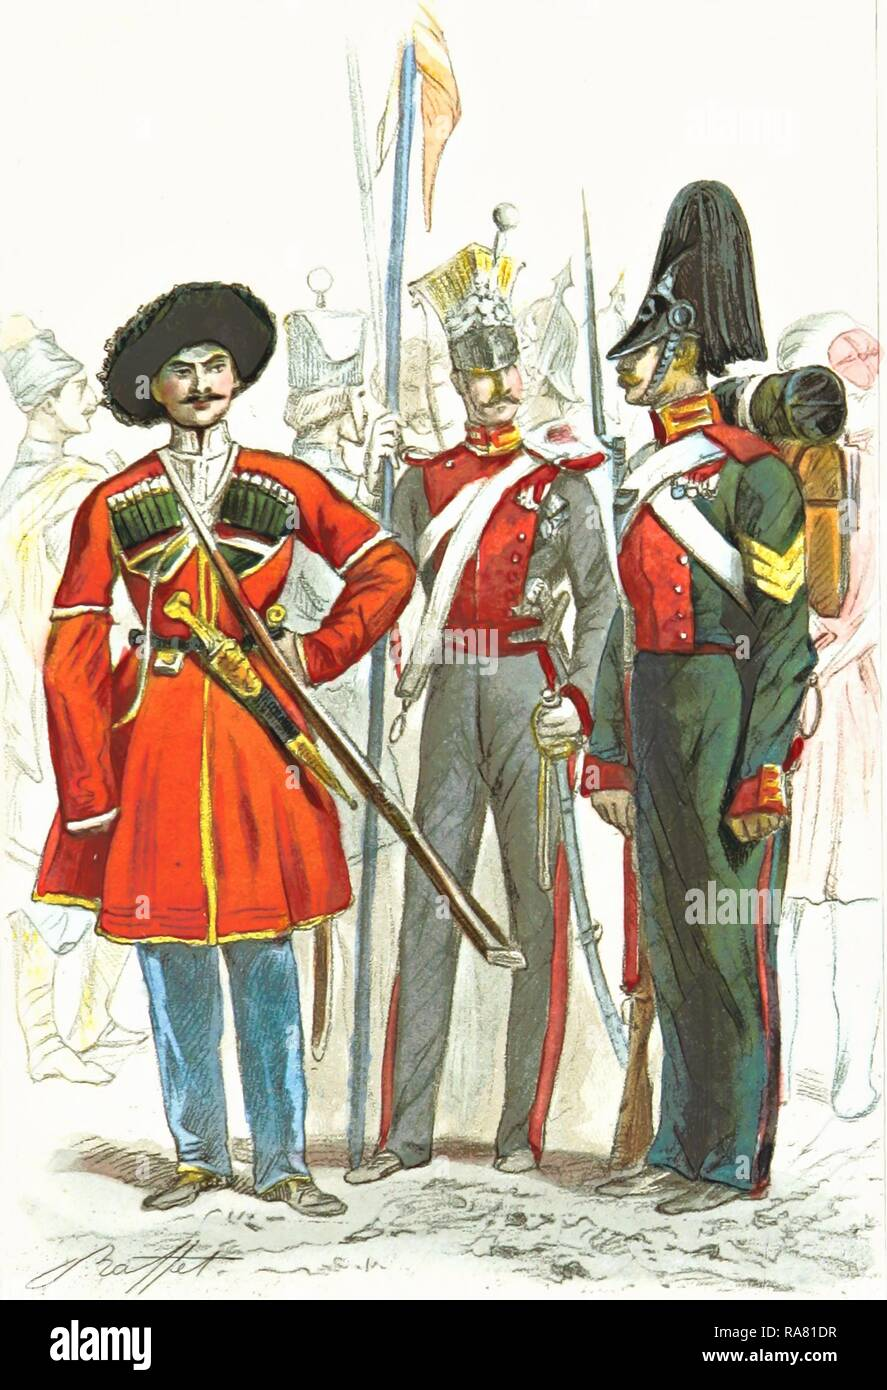 Russian army, Travel in the southern Russia and the Crimea in 1837, 19th century engraving. Reimagined - Stock Image